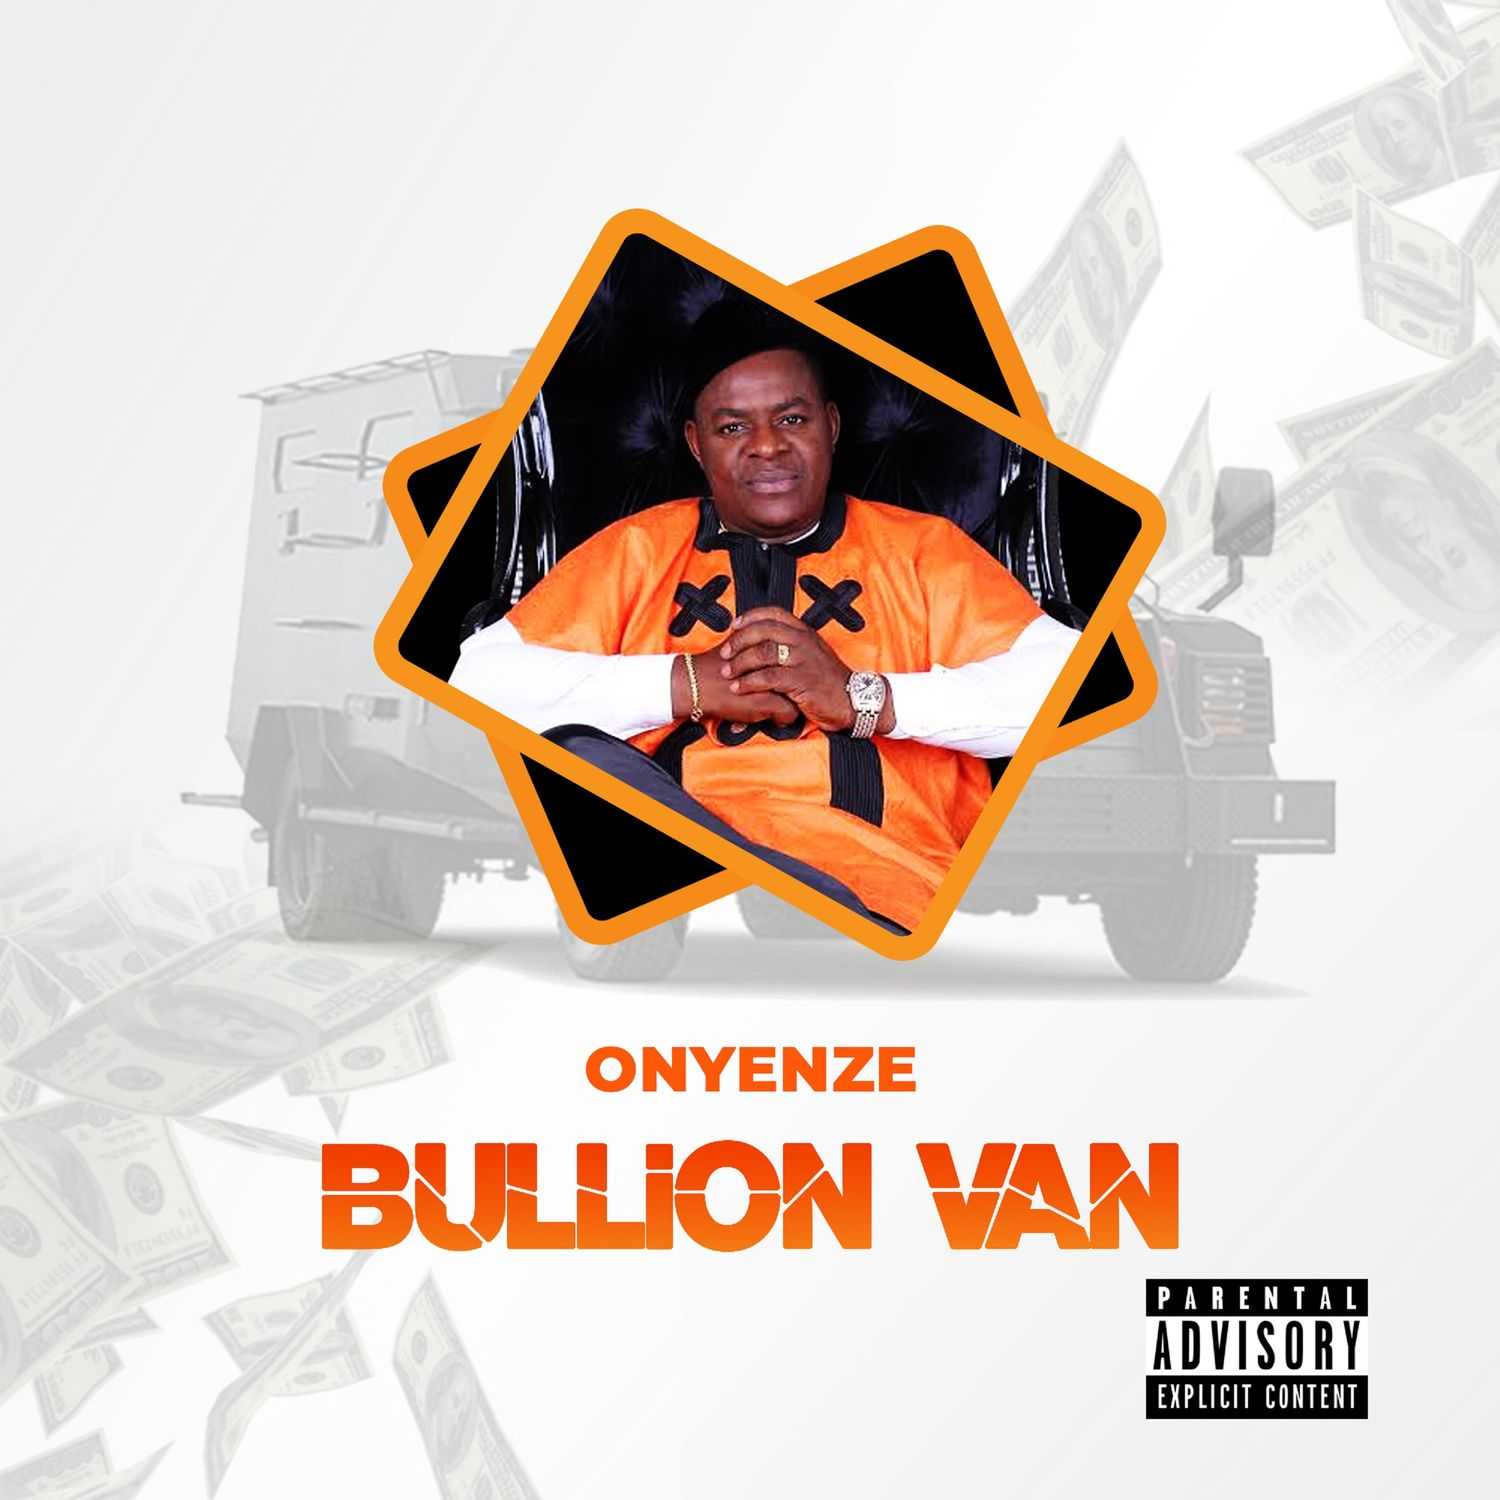 Onyenze - Bullion Van